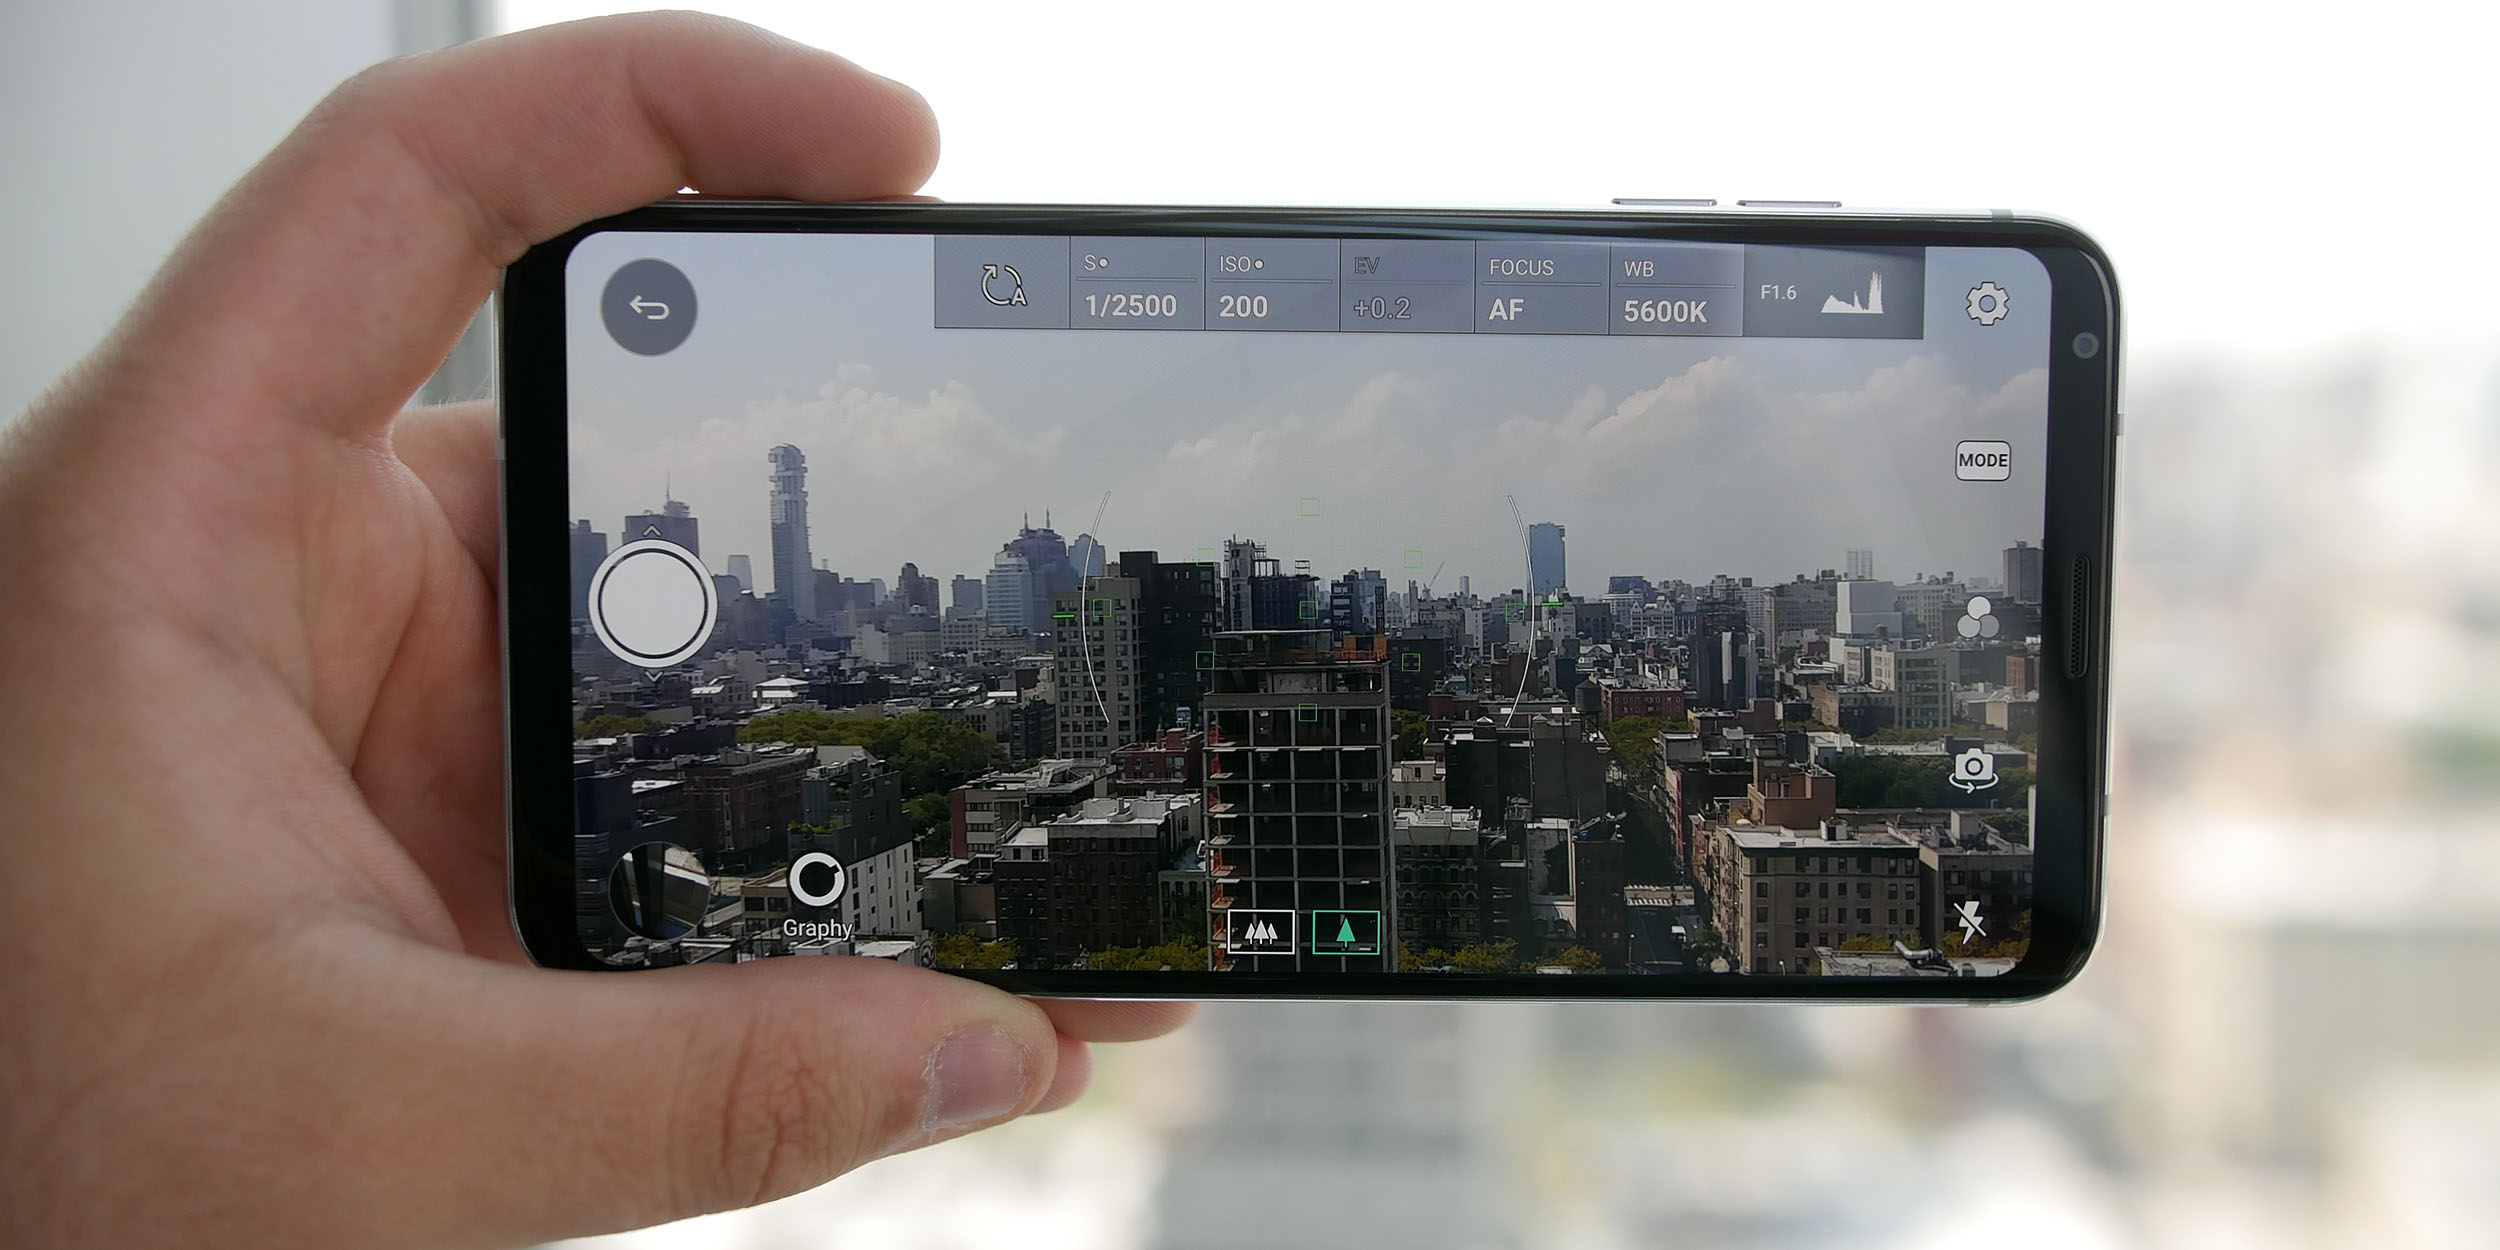 LG V30 goes official with revamped cameras, improved audio, and 6